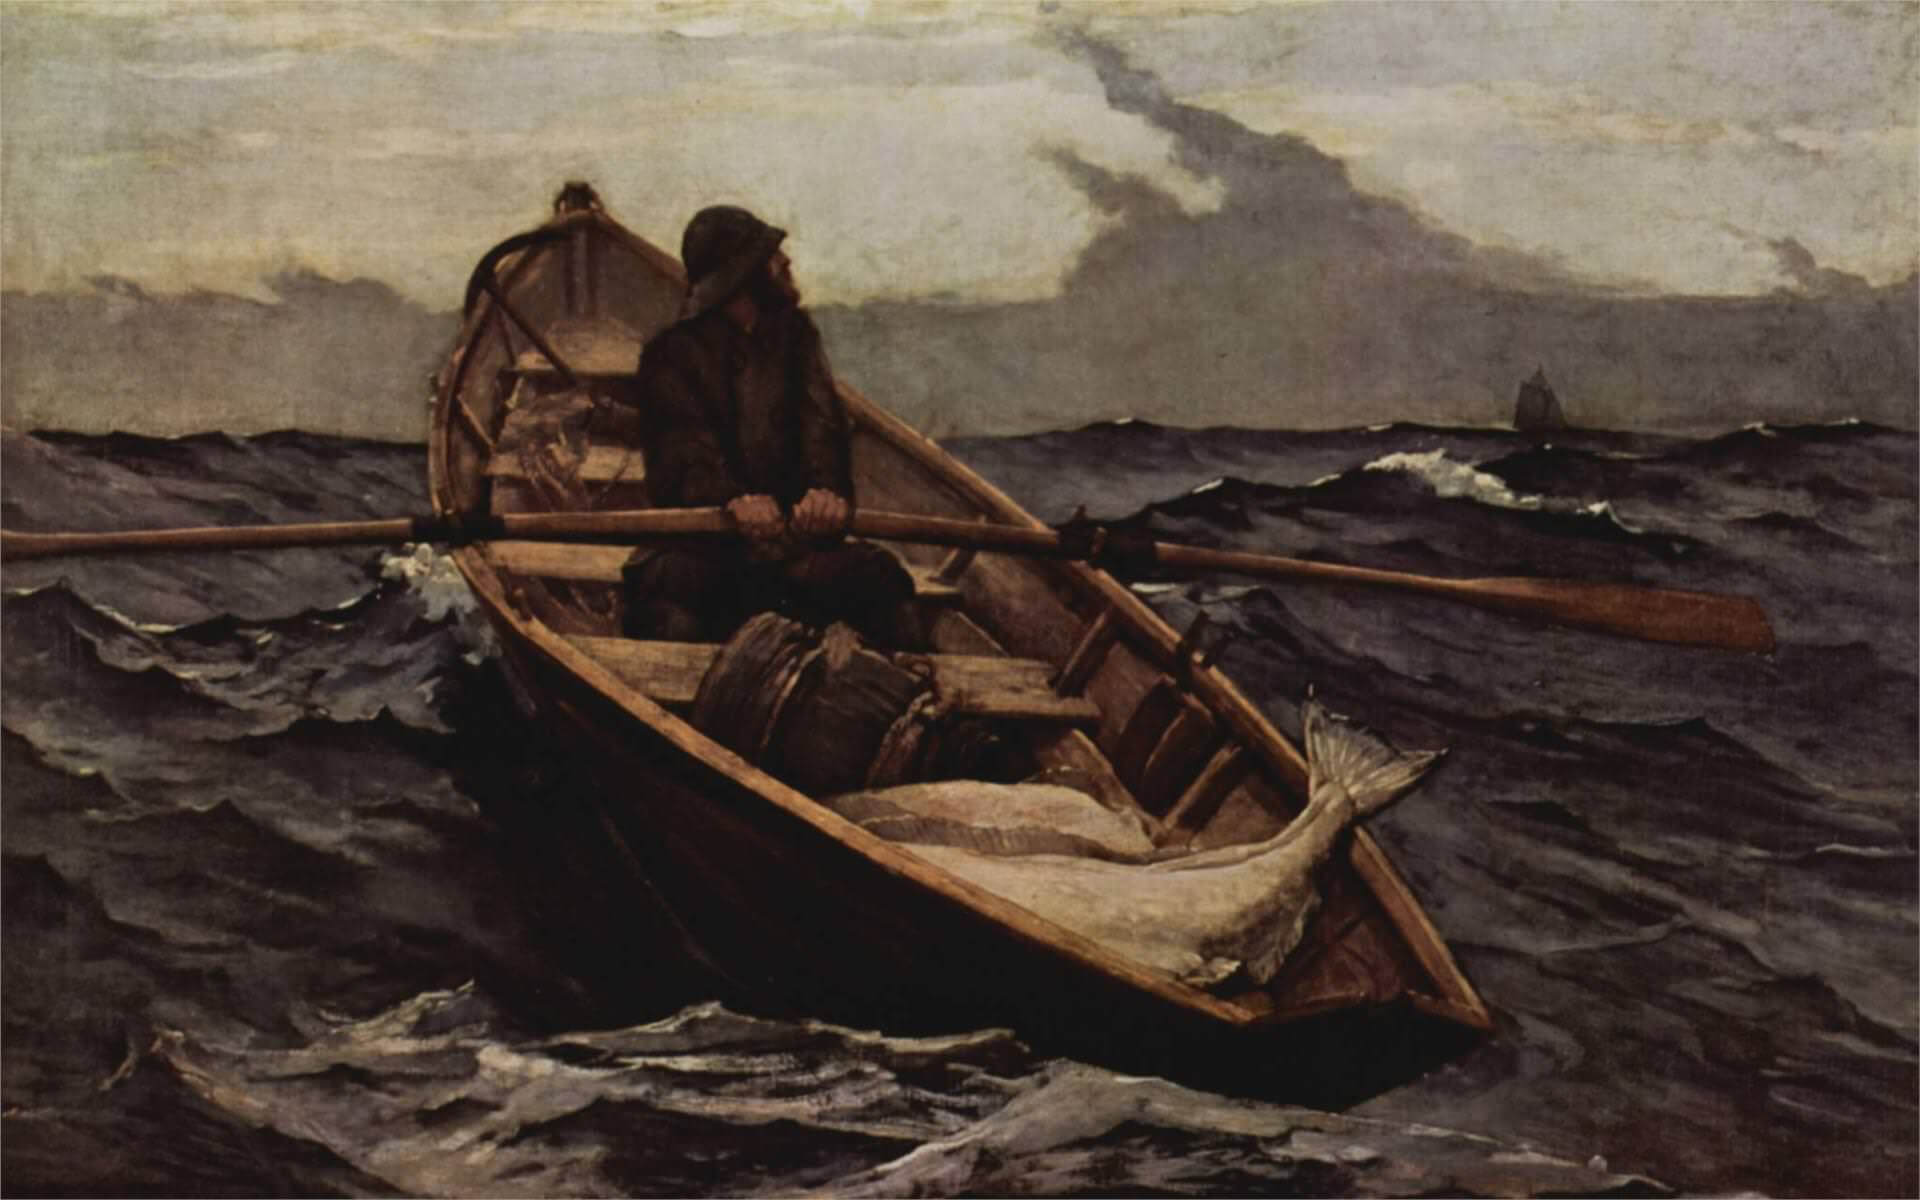 Biography of Winslow Homer